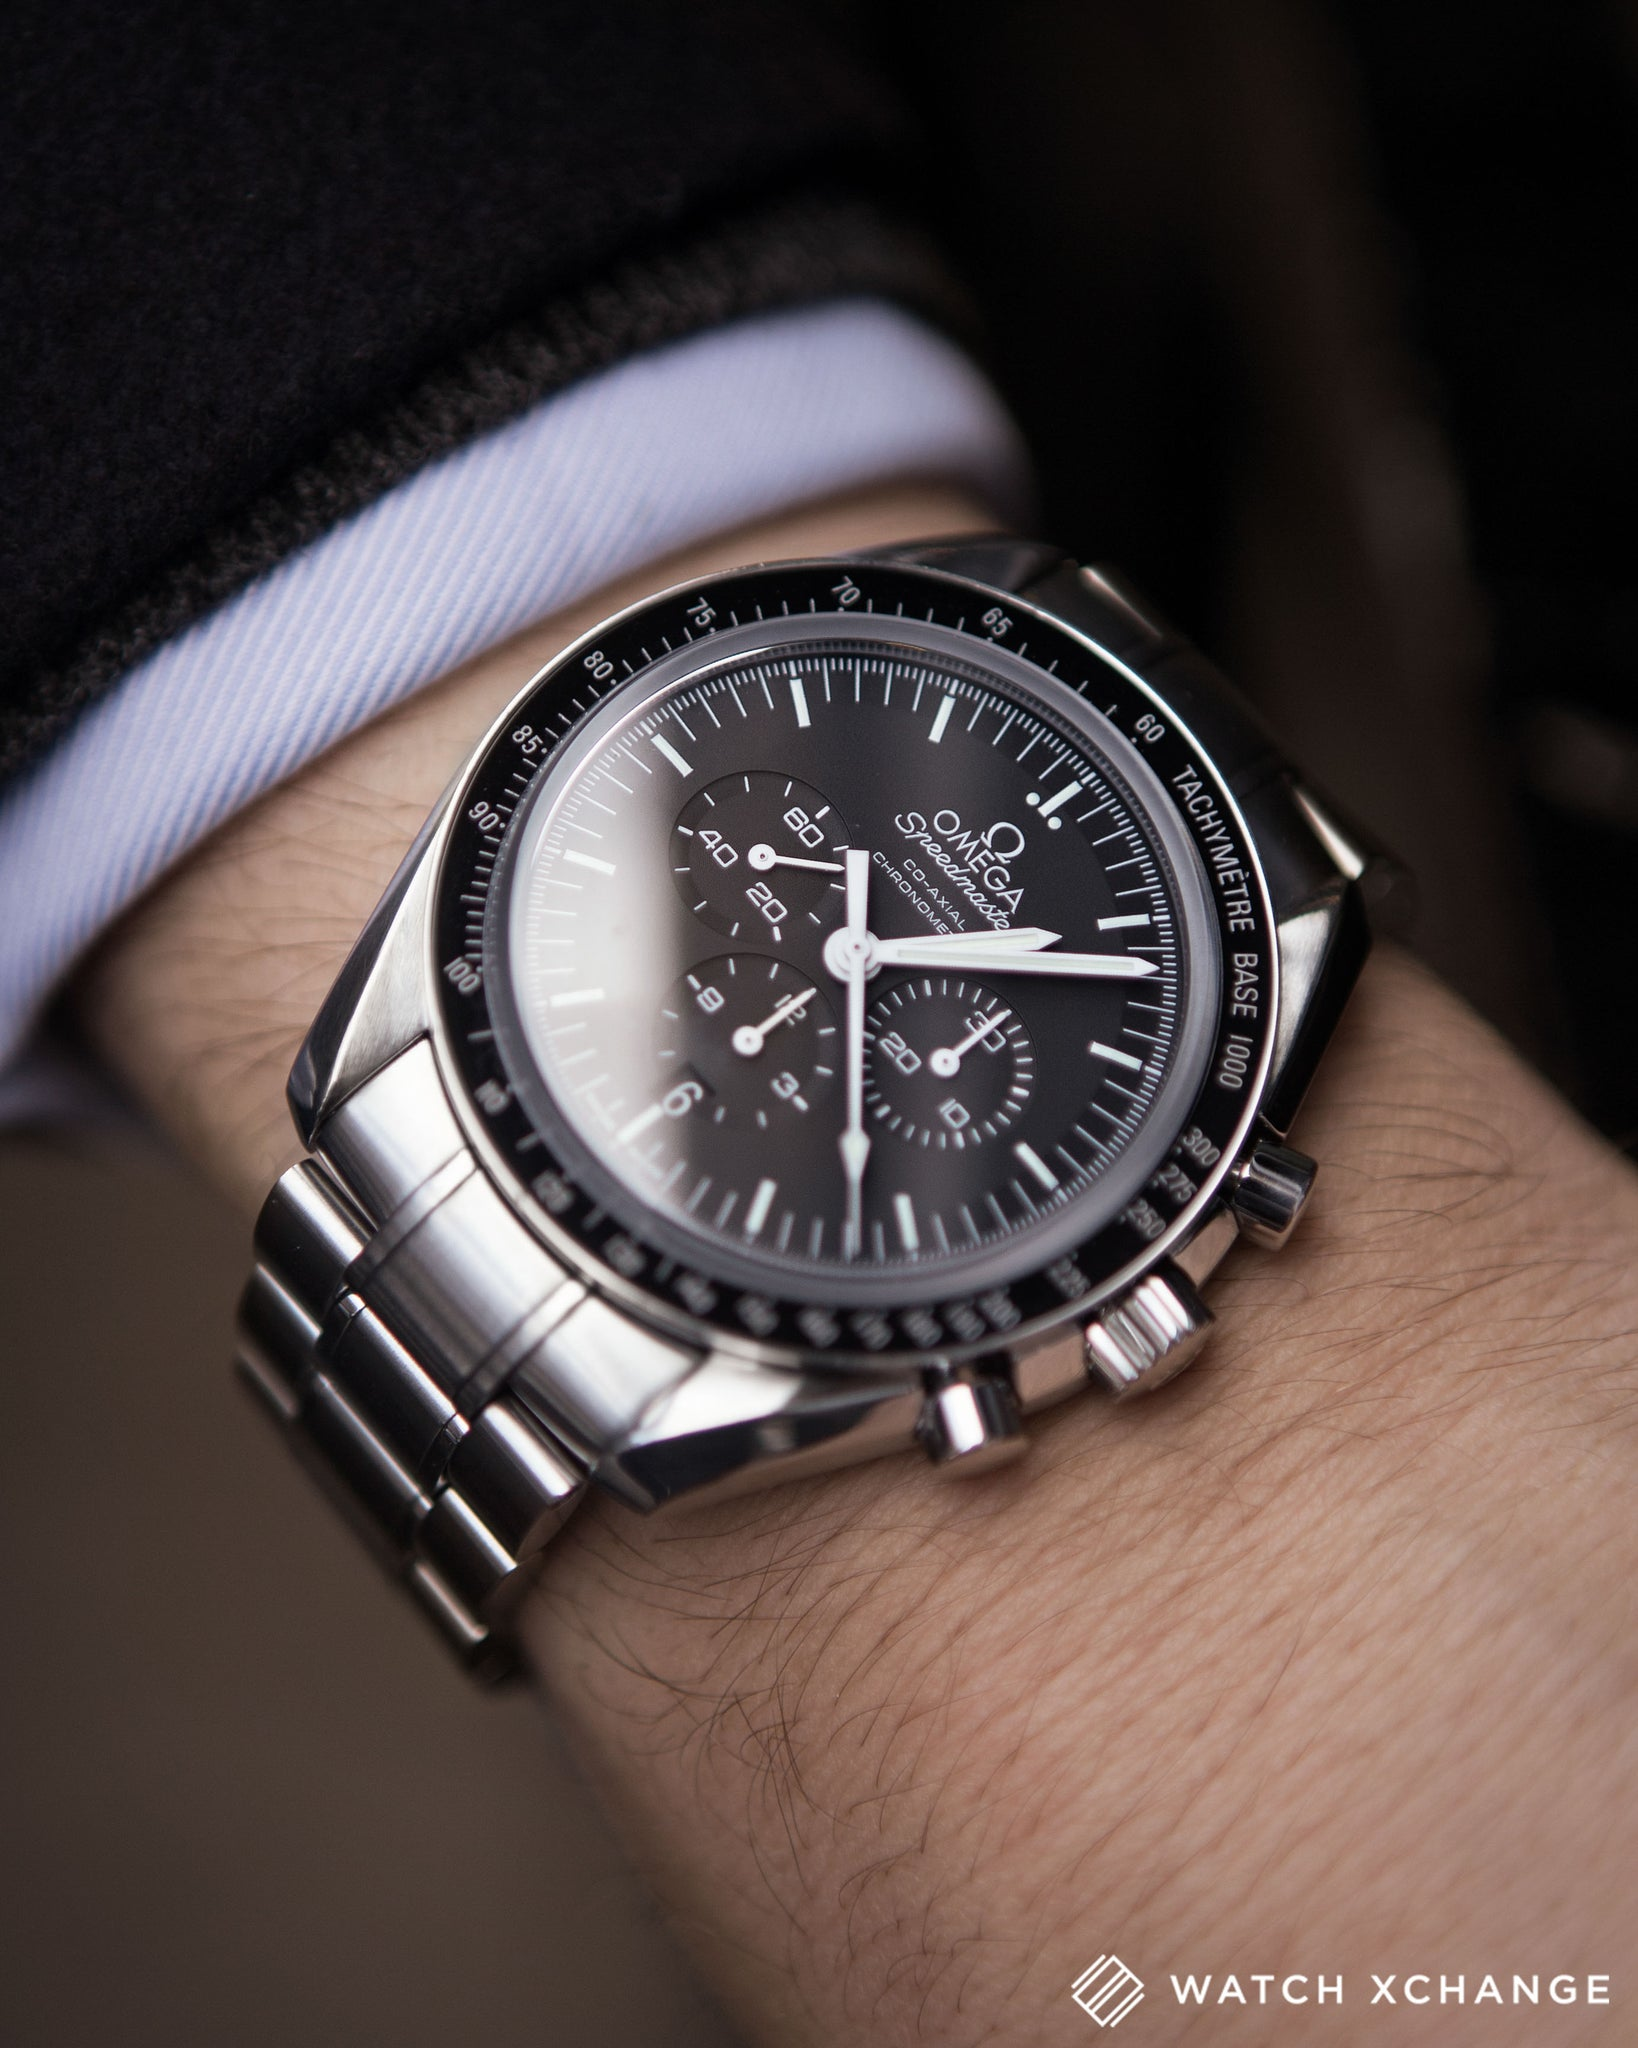 Omega-Speedmaster-Co-Axial-Moonwatch-311-30-44-50-01-002-Omega-3313-automatic-stainless-steel-buy-preowned-authentic-luxury-watch-for-sale5_2048x2048.jpg?9205434268527088370